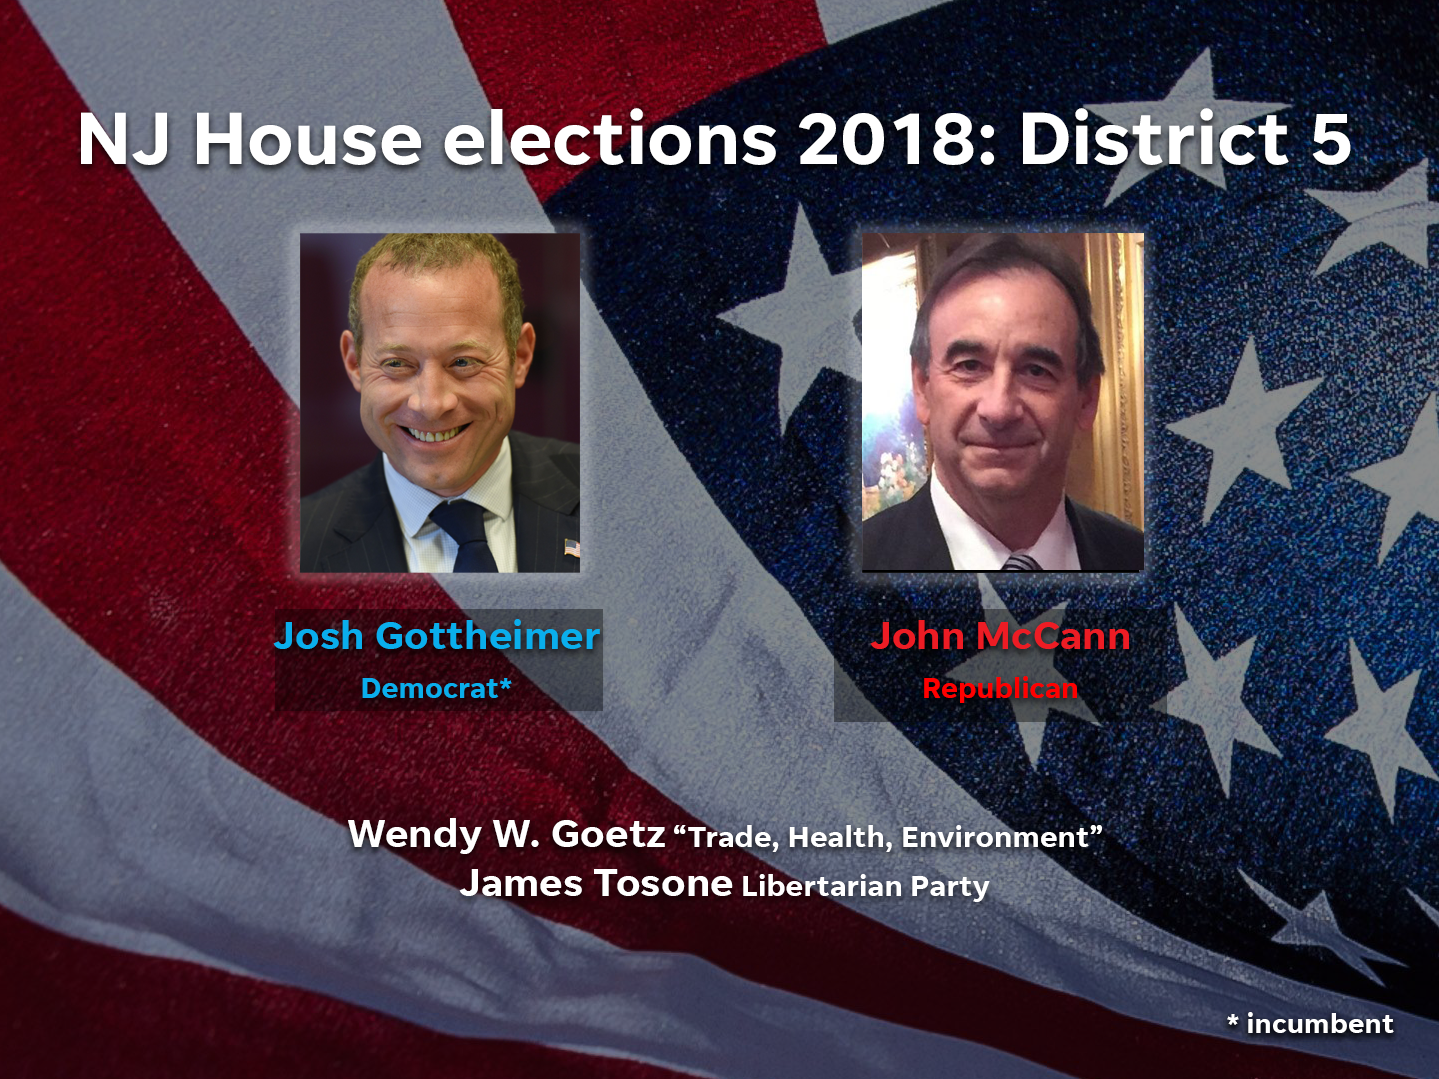 Josh Gottheimer (D) and John McCann (R) are among the candidates running in District 5 in the 2018 NJ House elections.